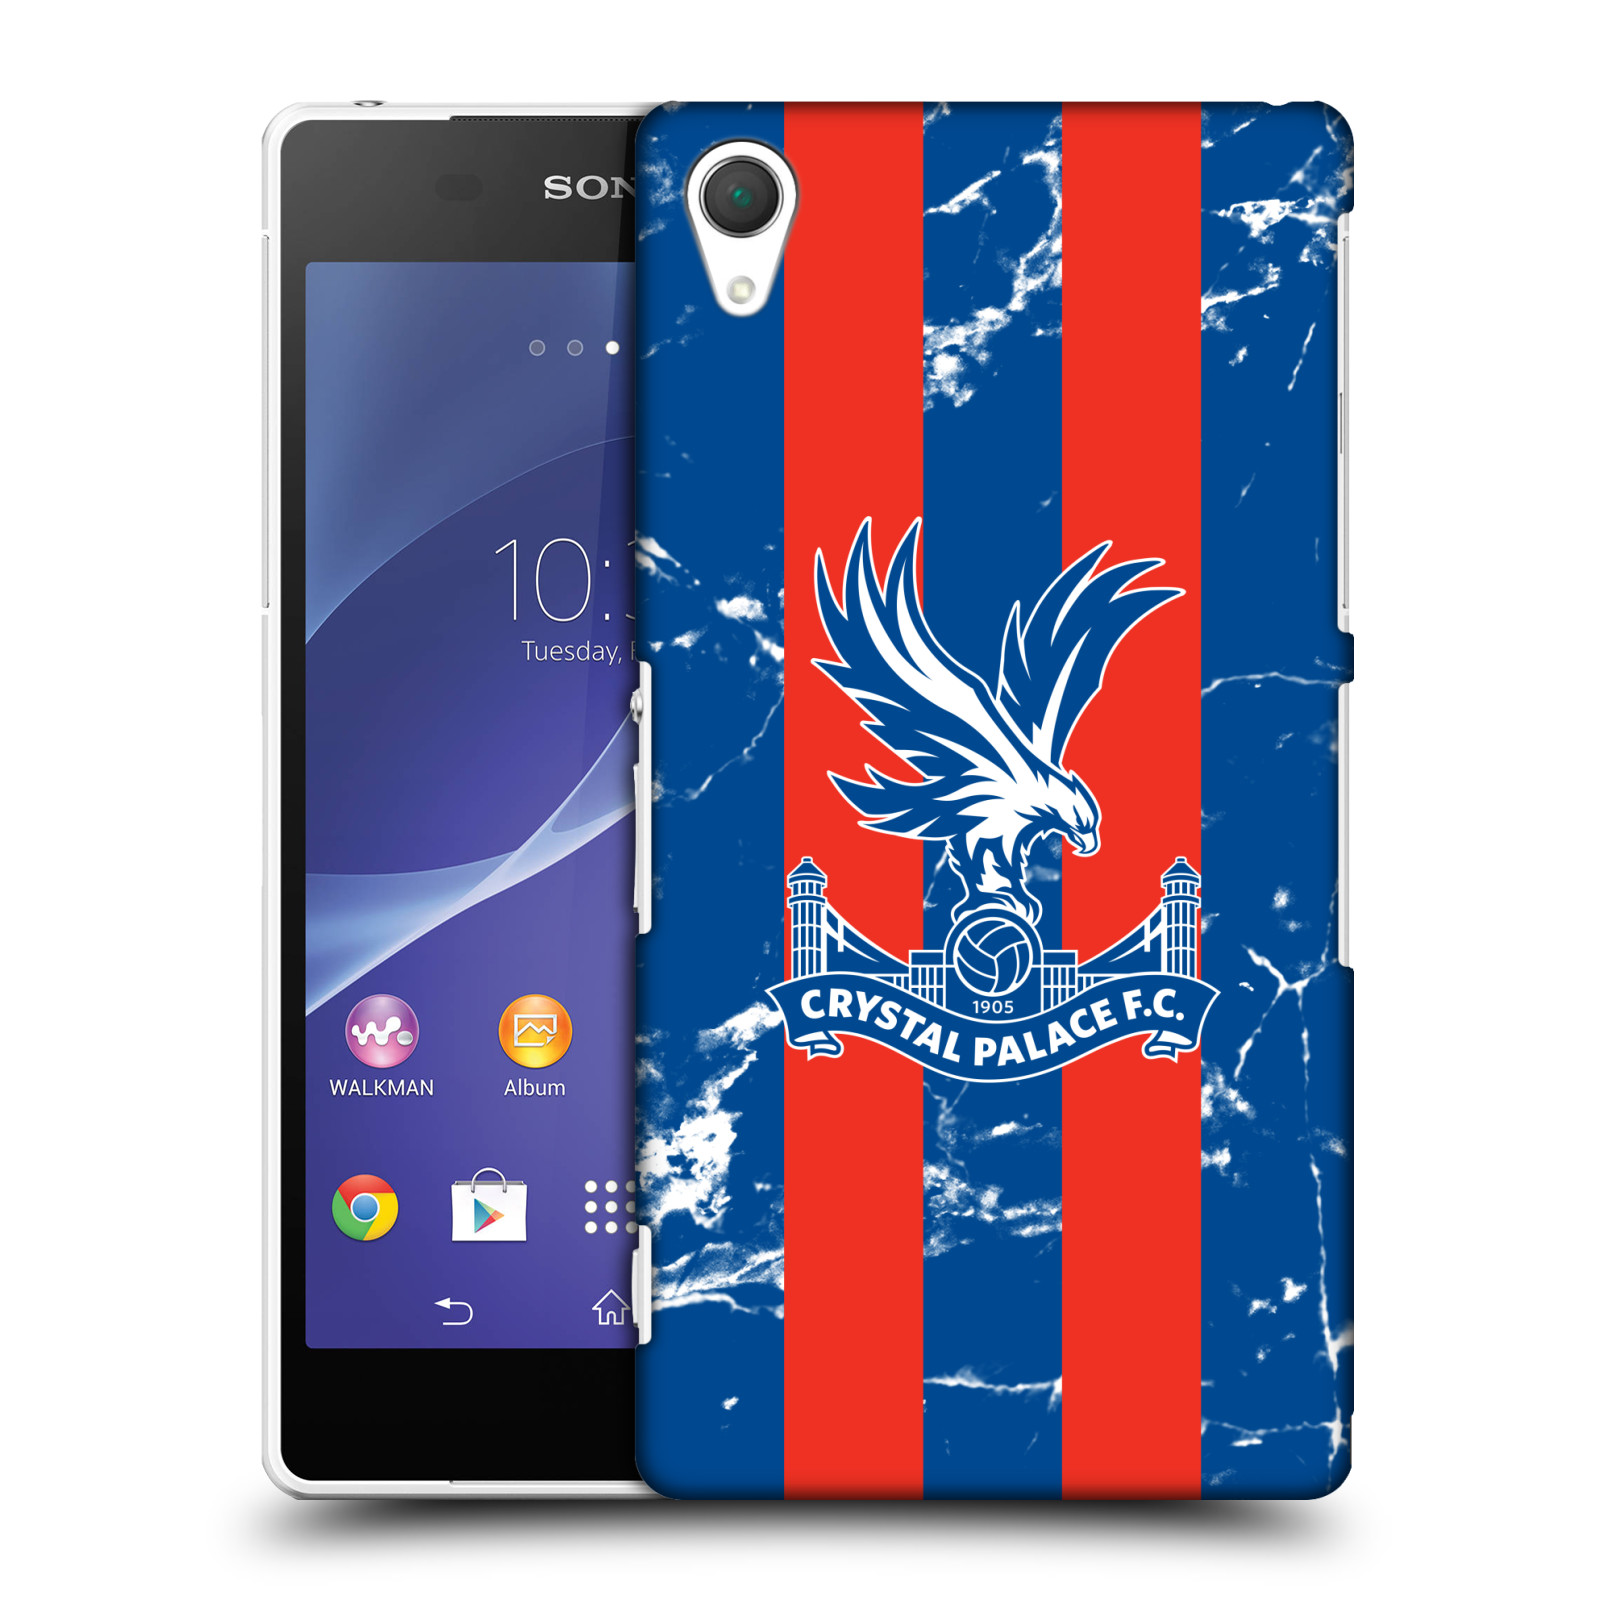 OFFICIAL-CRYSTAL-PALACE-FC-2017-18-MARBLE-HARD-BACK-CASE-FOR-SONY-PHONES-2